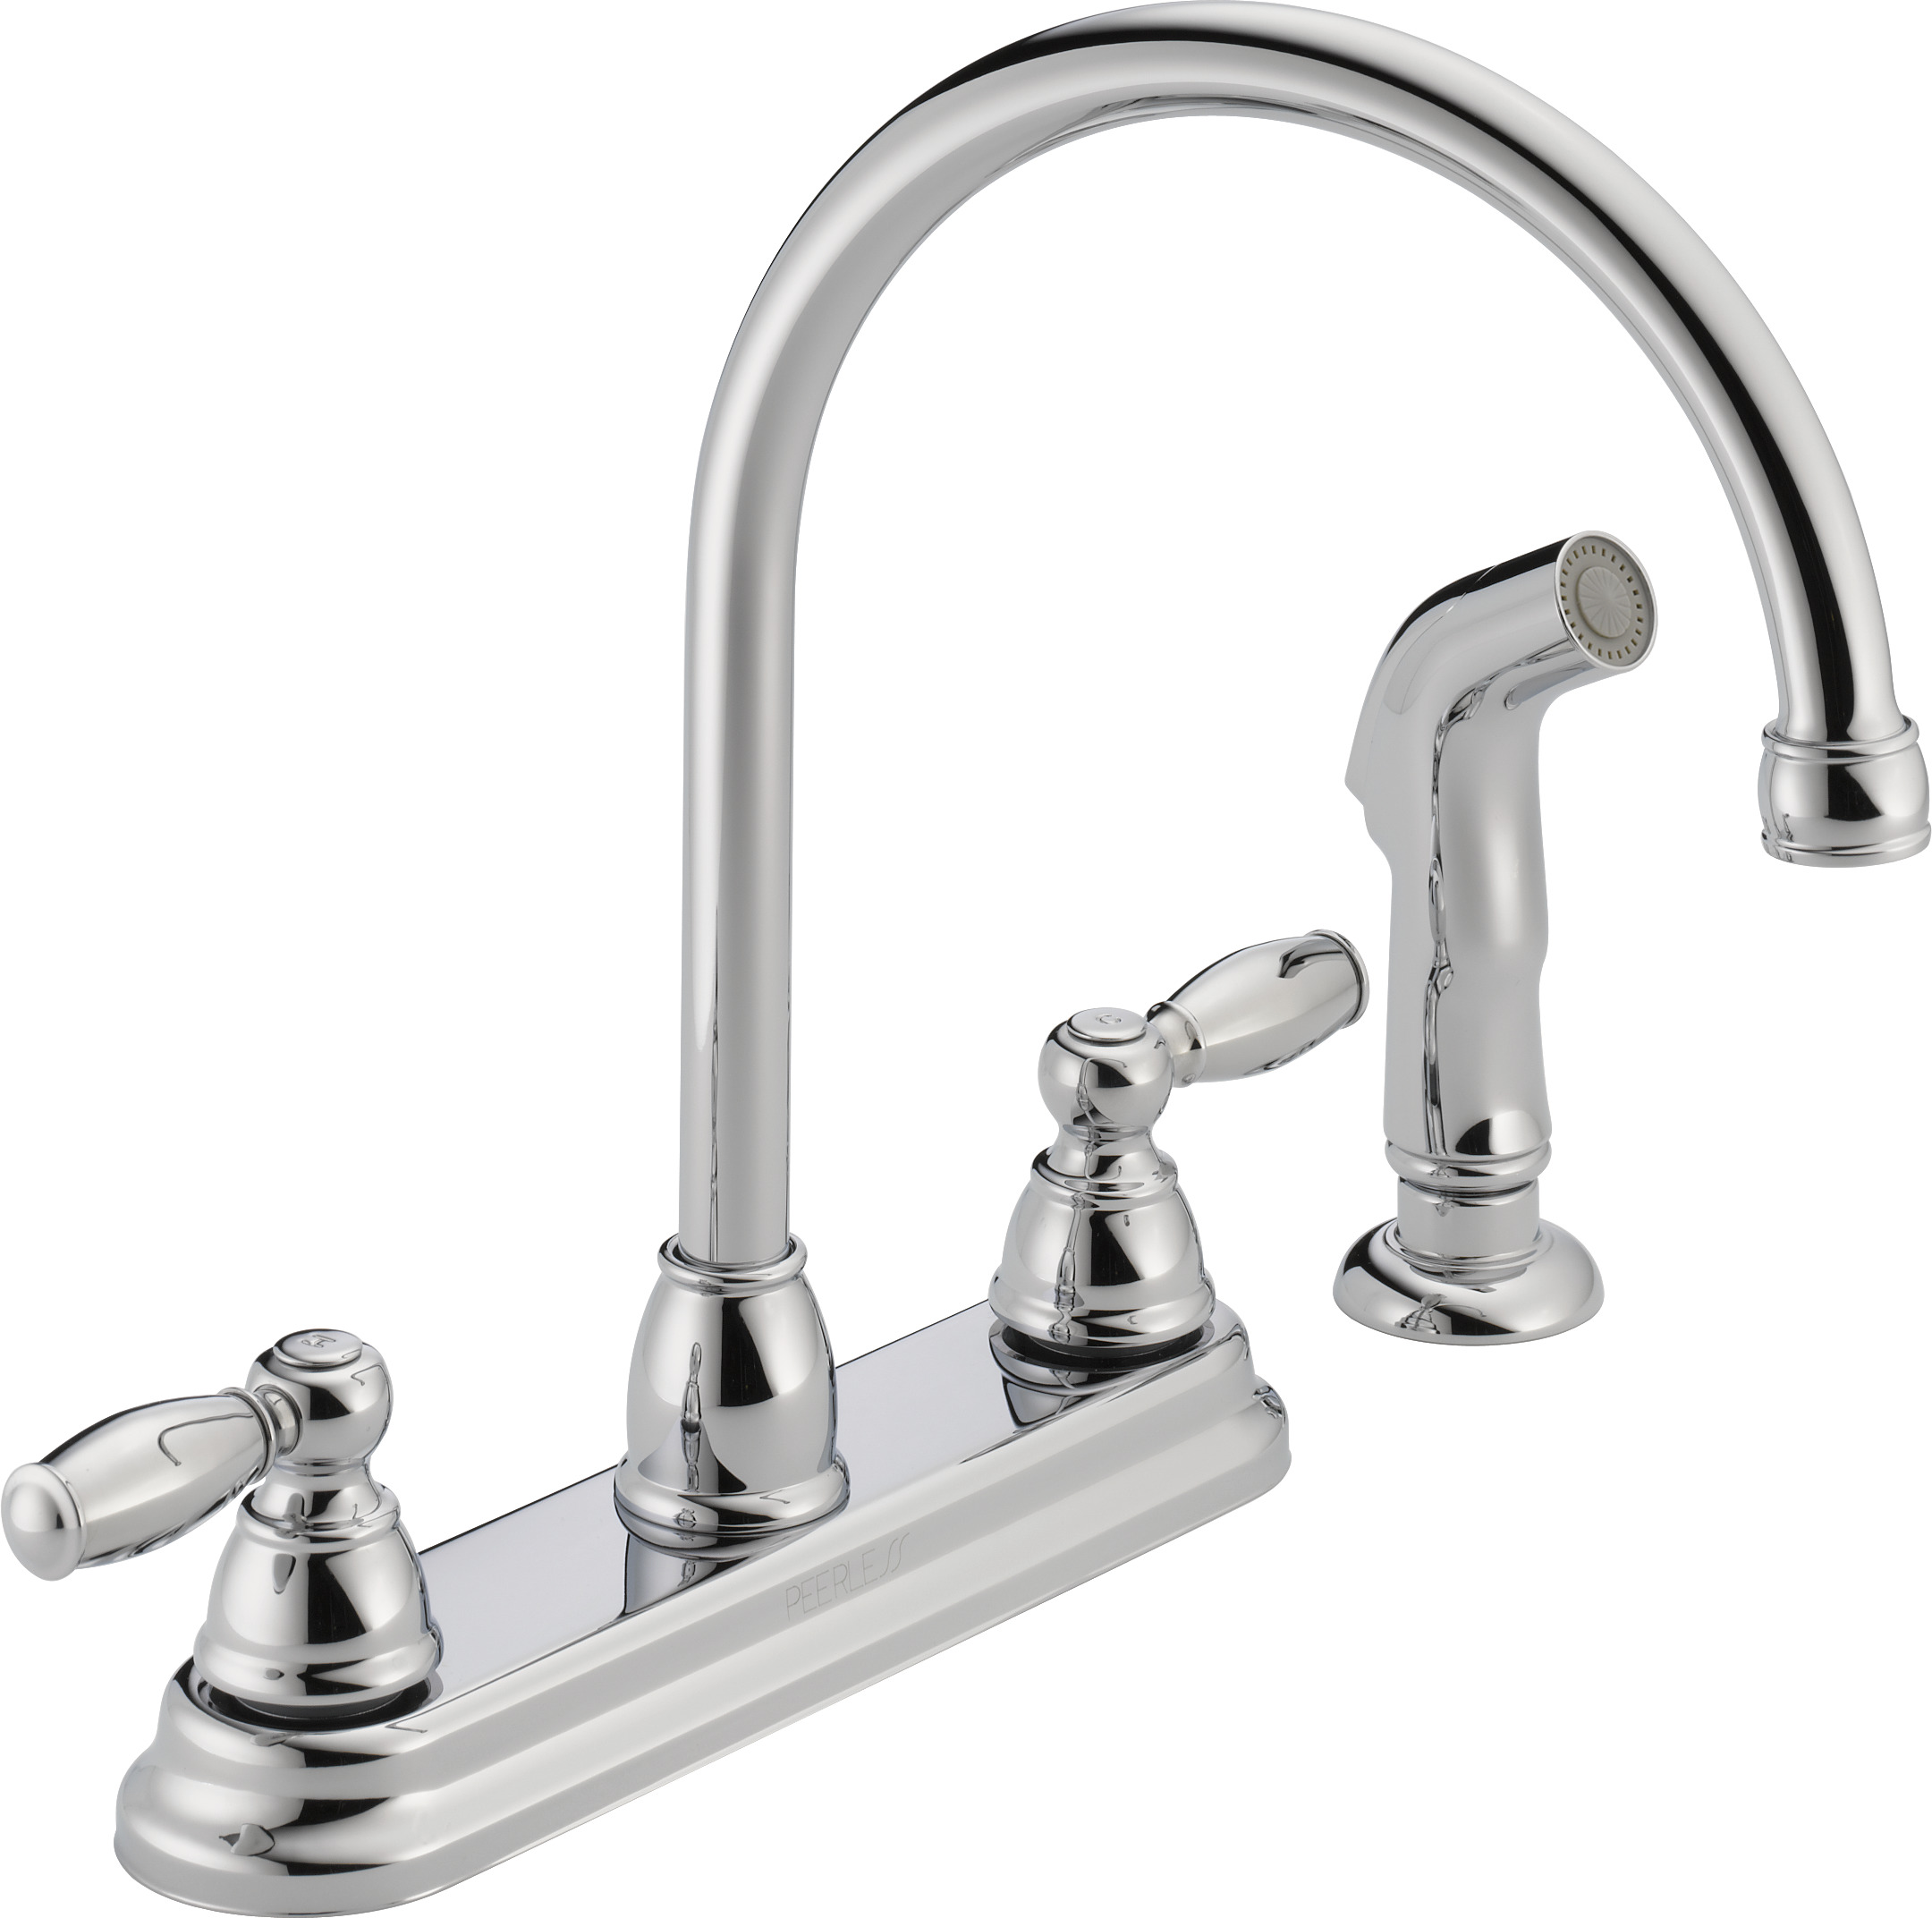 Pfister F 529 PDSL Pasadena Single Handle Pull Down Sprayer Kitchen Faucet  With Soap Dispenser In Slate   Walmart.com